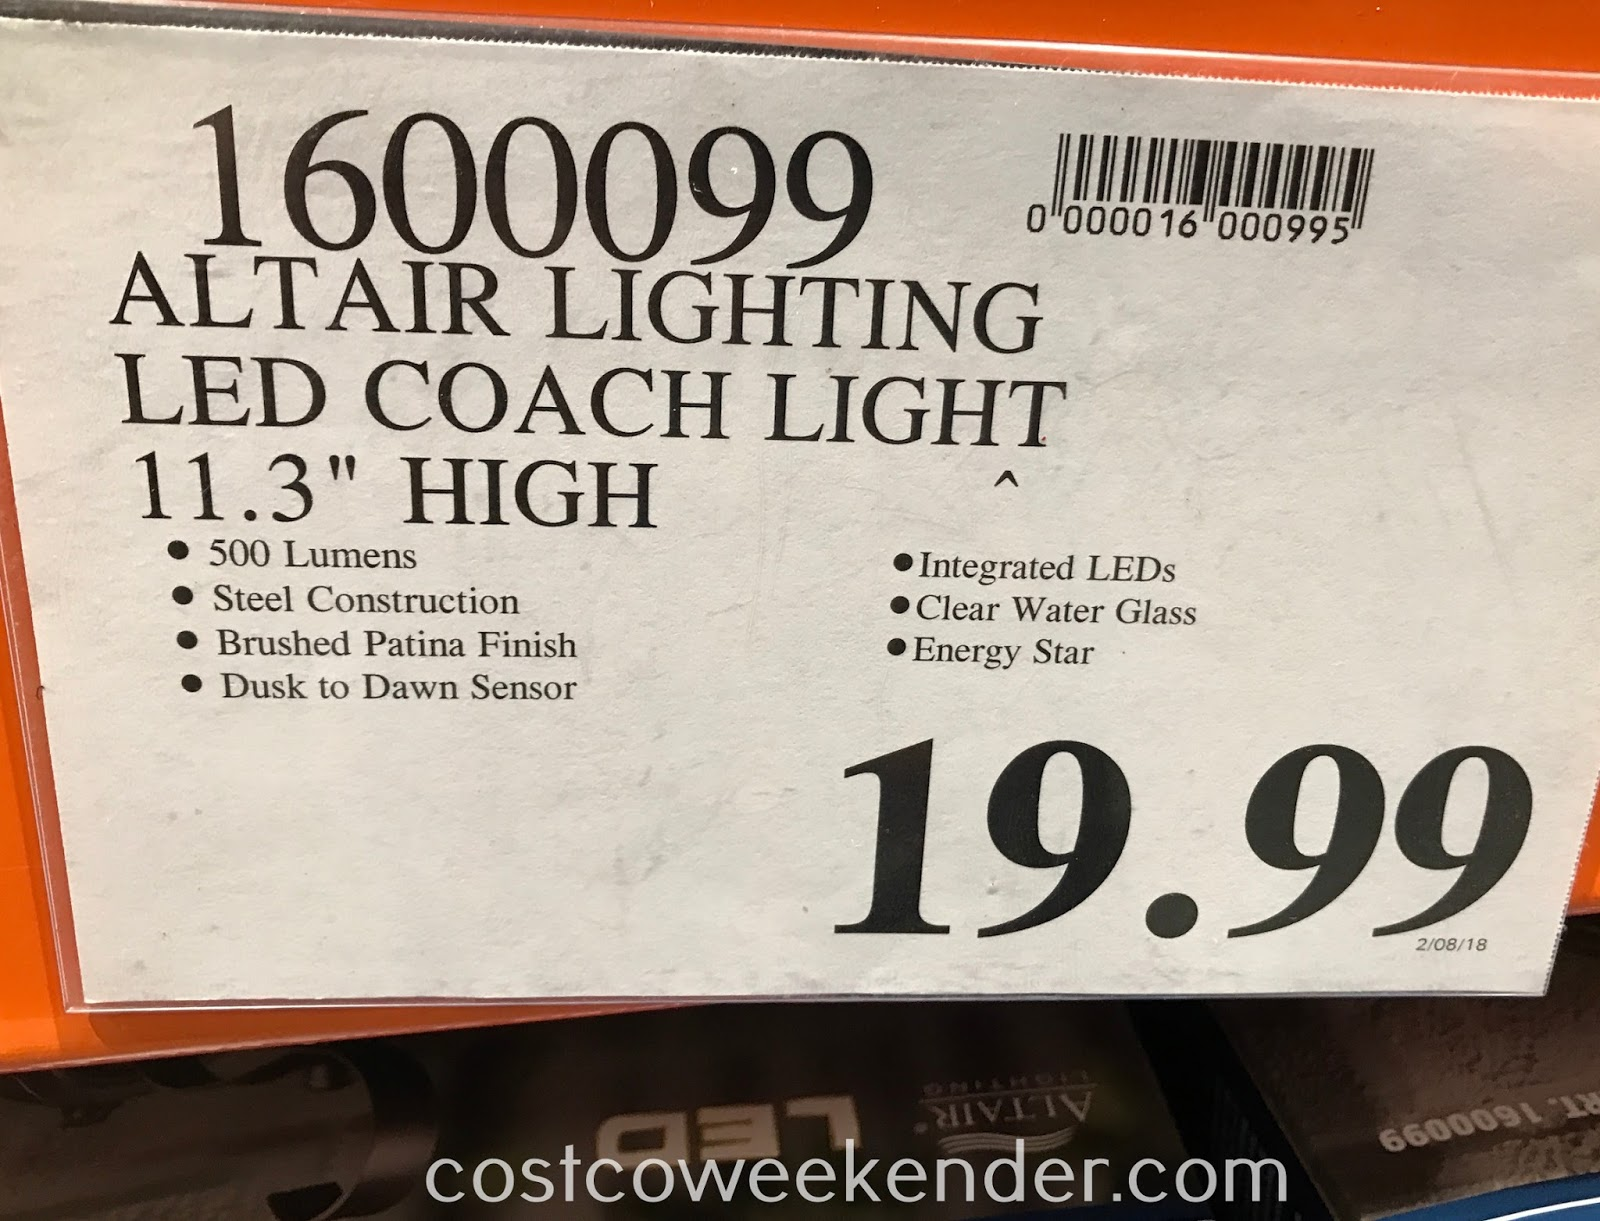 altair outdoor led coach light costco